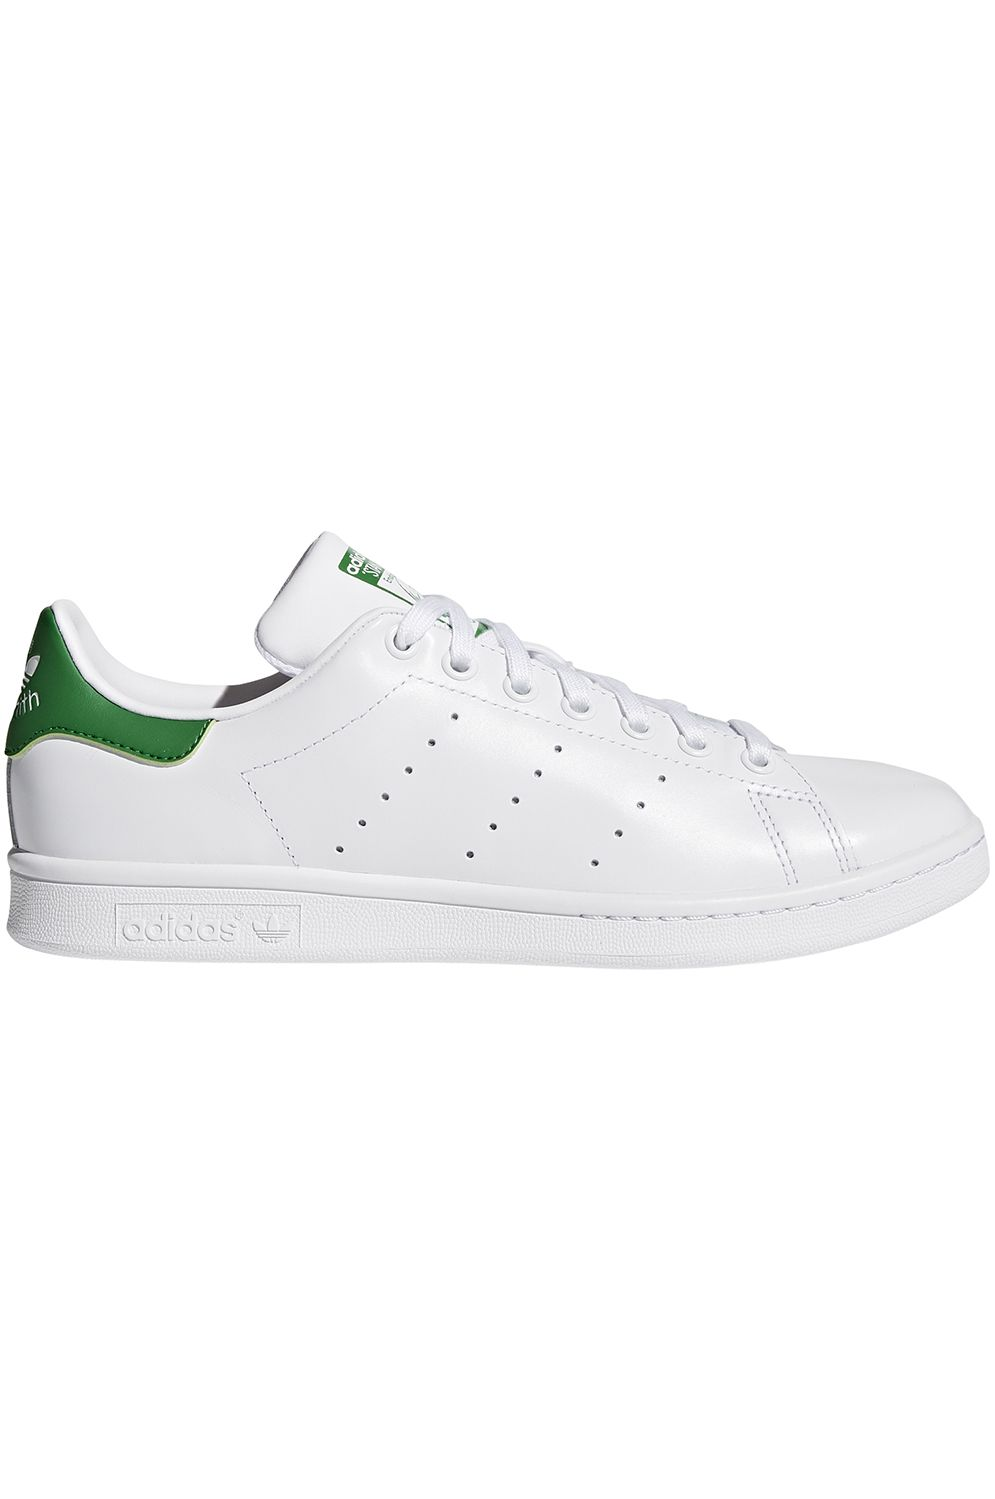 8f17224af Tenis Adidas STAN SMITH Ftwr White/Core White/Green